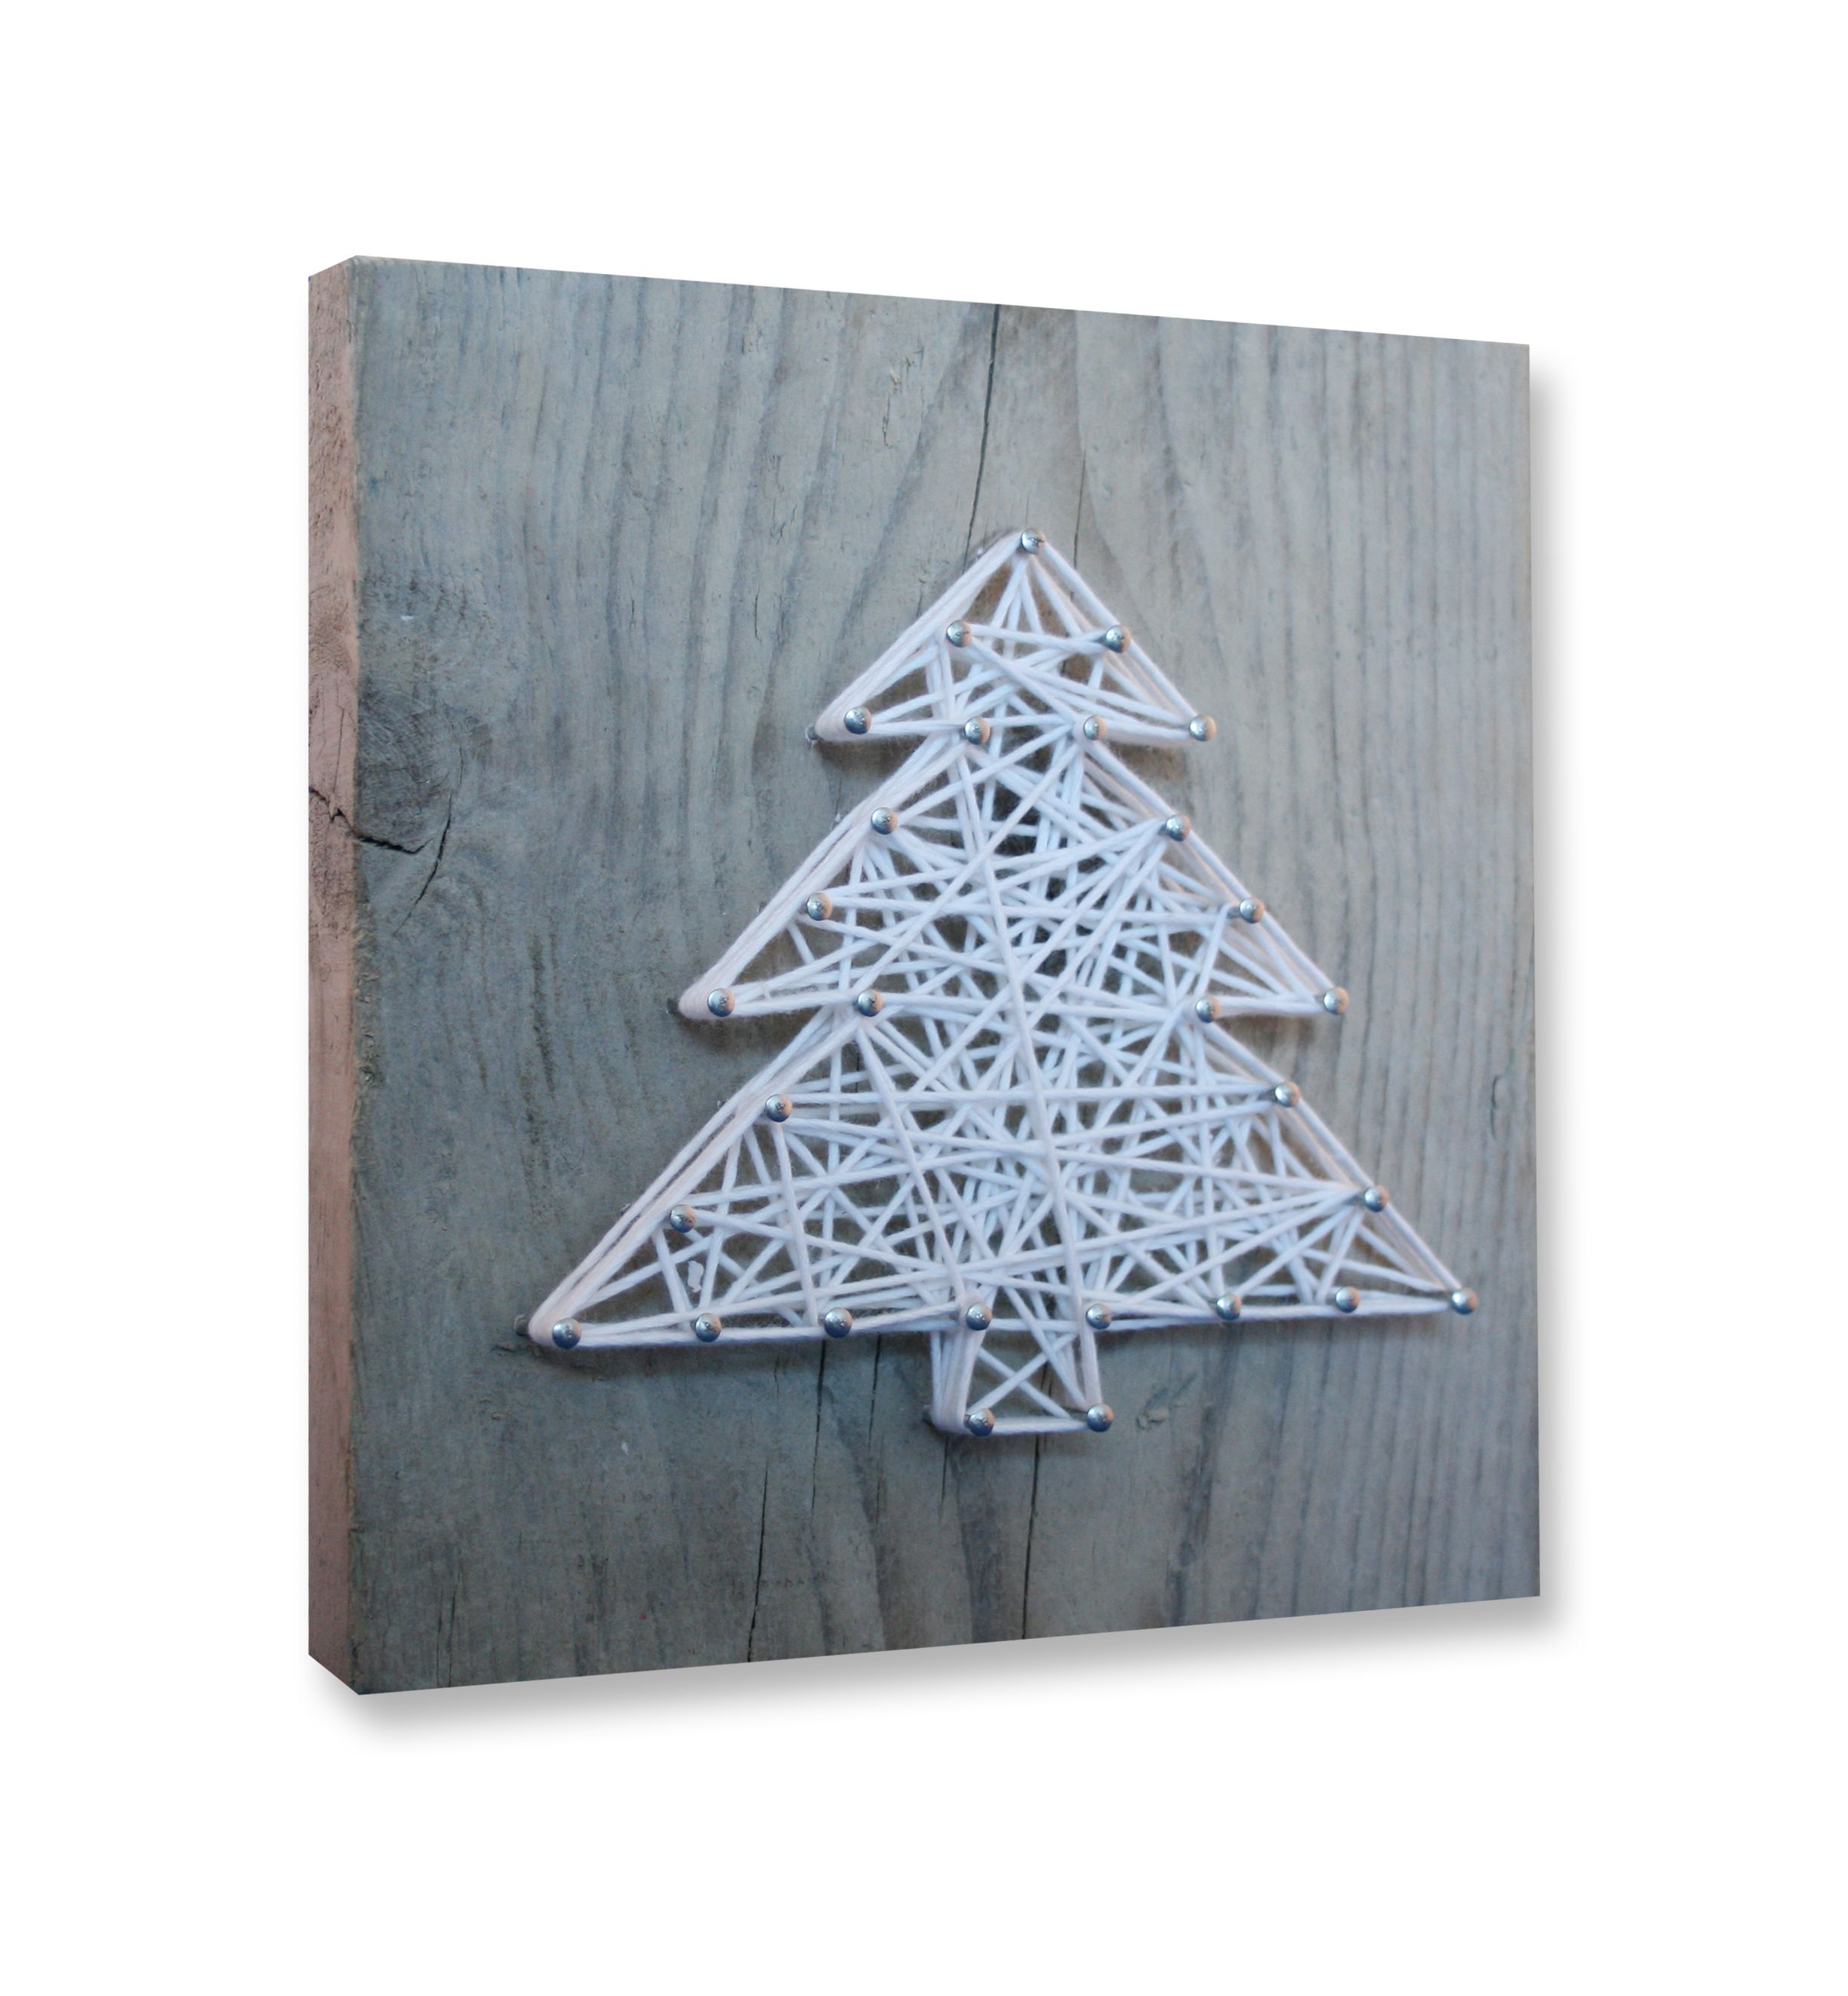 String Art Diy Christmas Package Including Wood Panel (20X20Cm), Nails, String